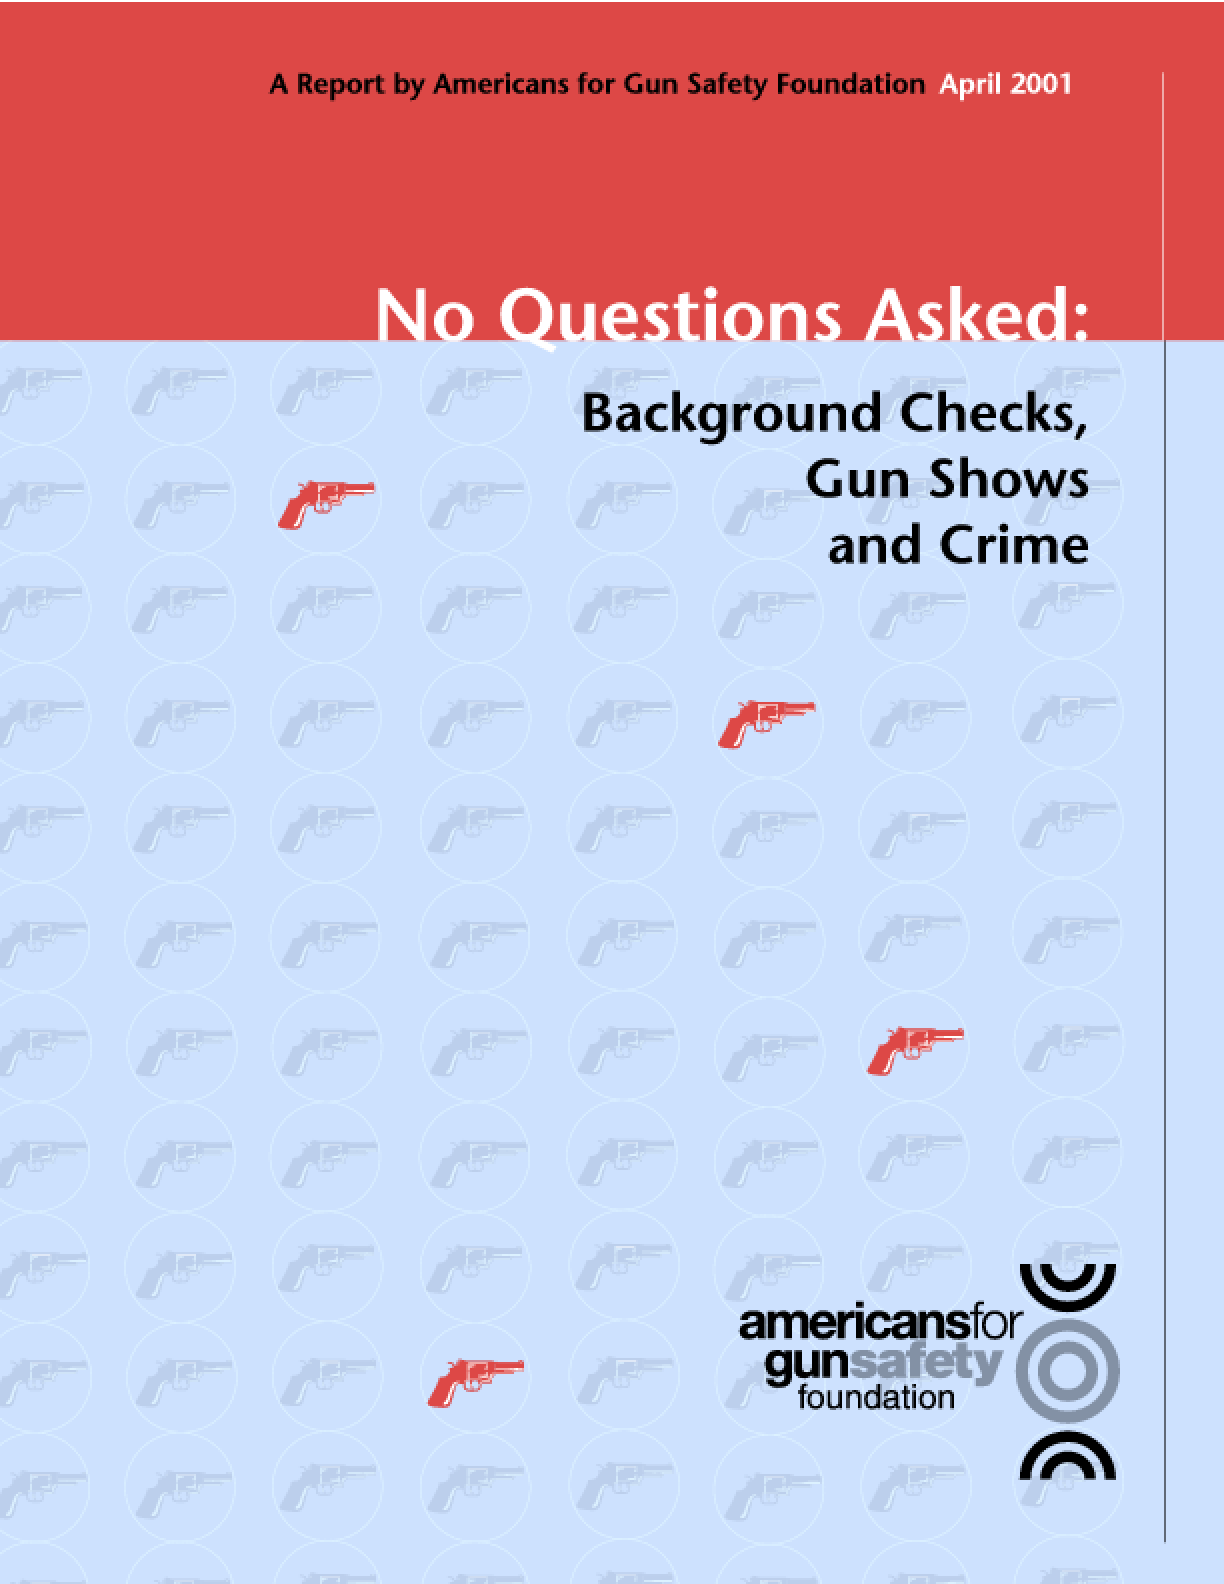 No Questions Asked: Background Checks, Gun Shows, and Crime